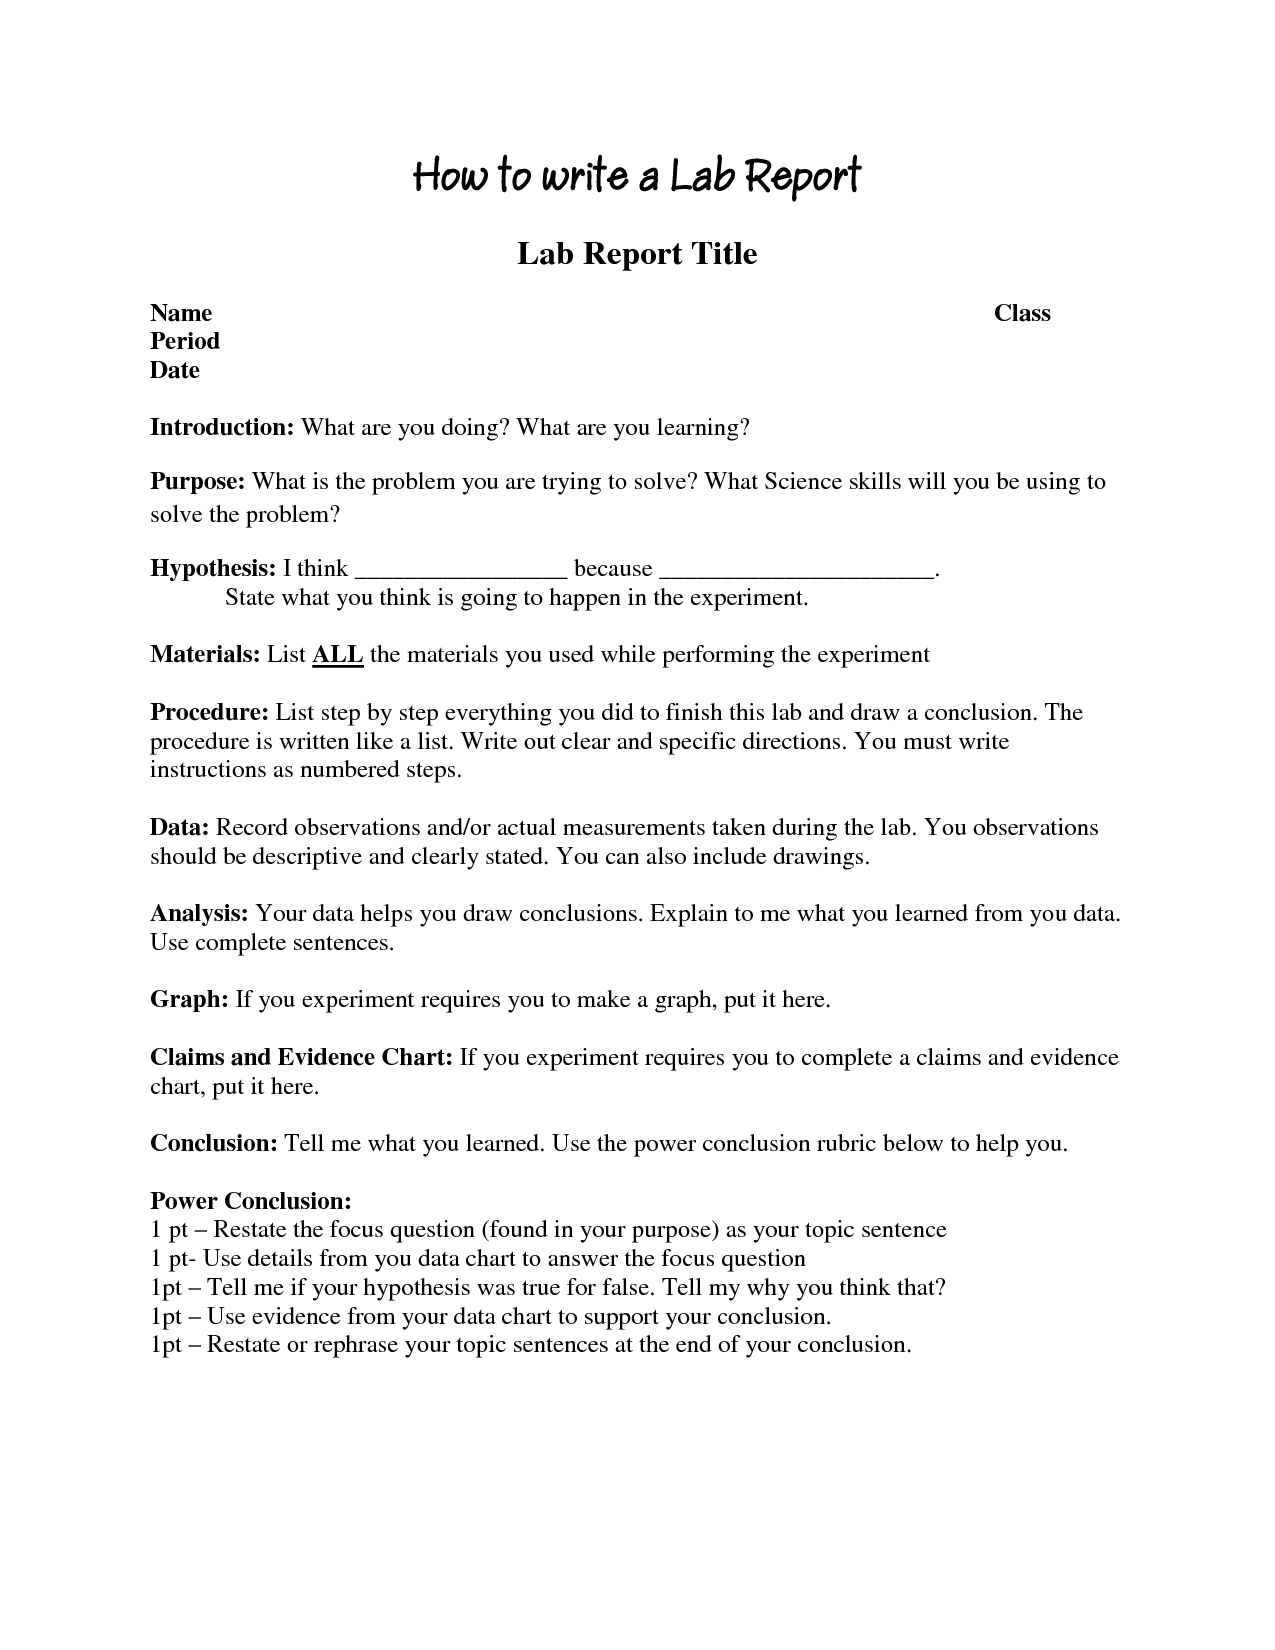 Writing an experiment report